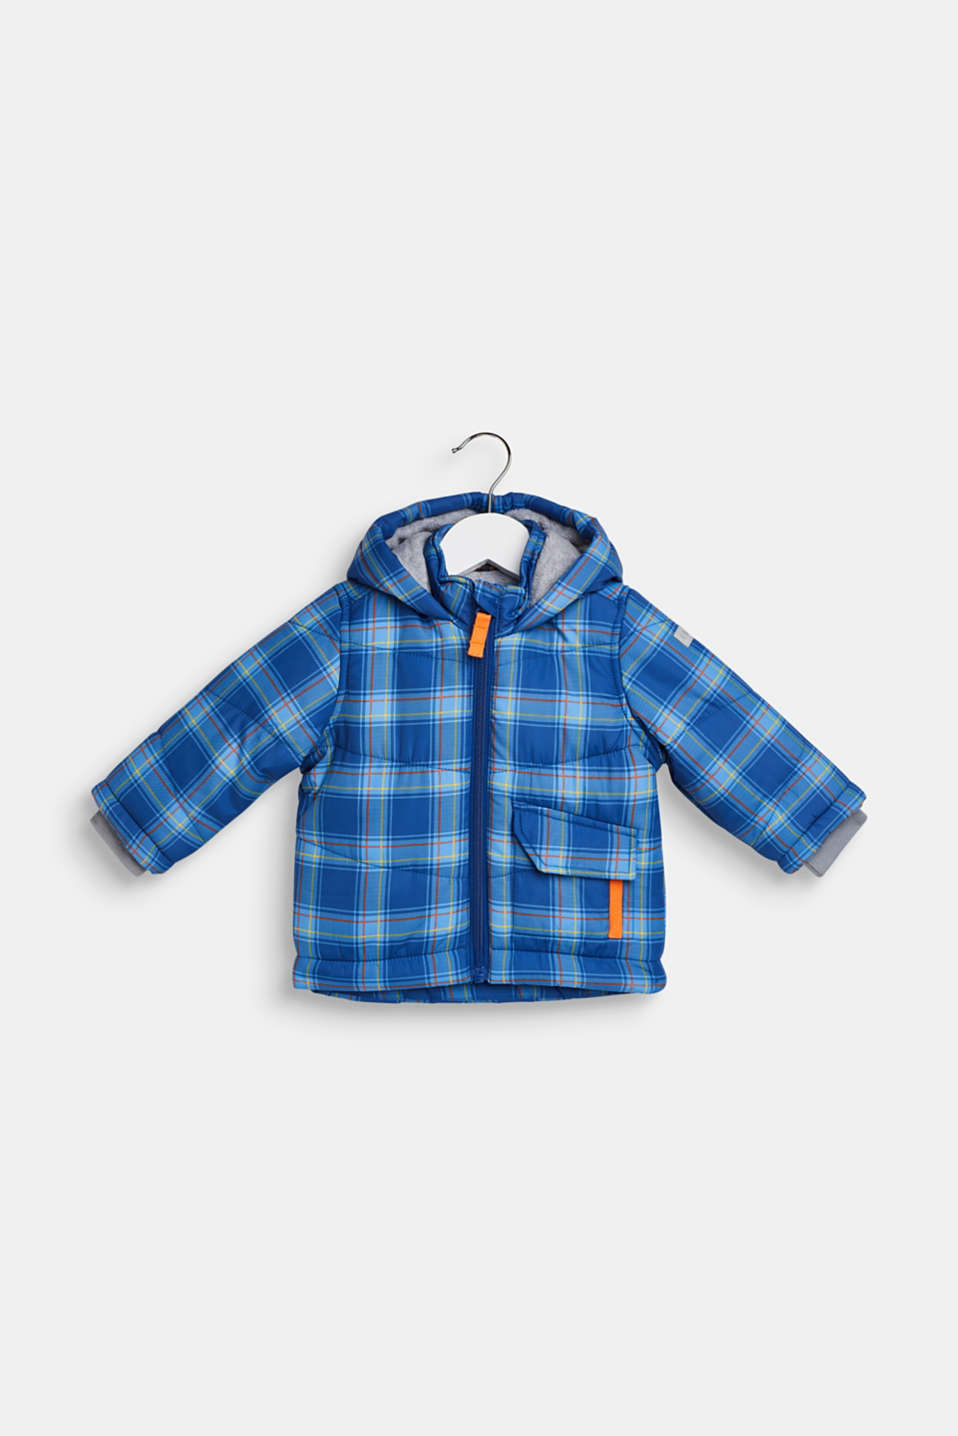 Esprit Padded check jacket with fleece lining at our